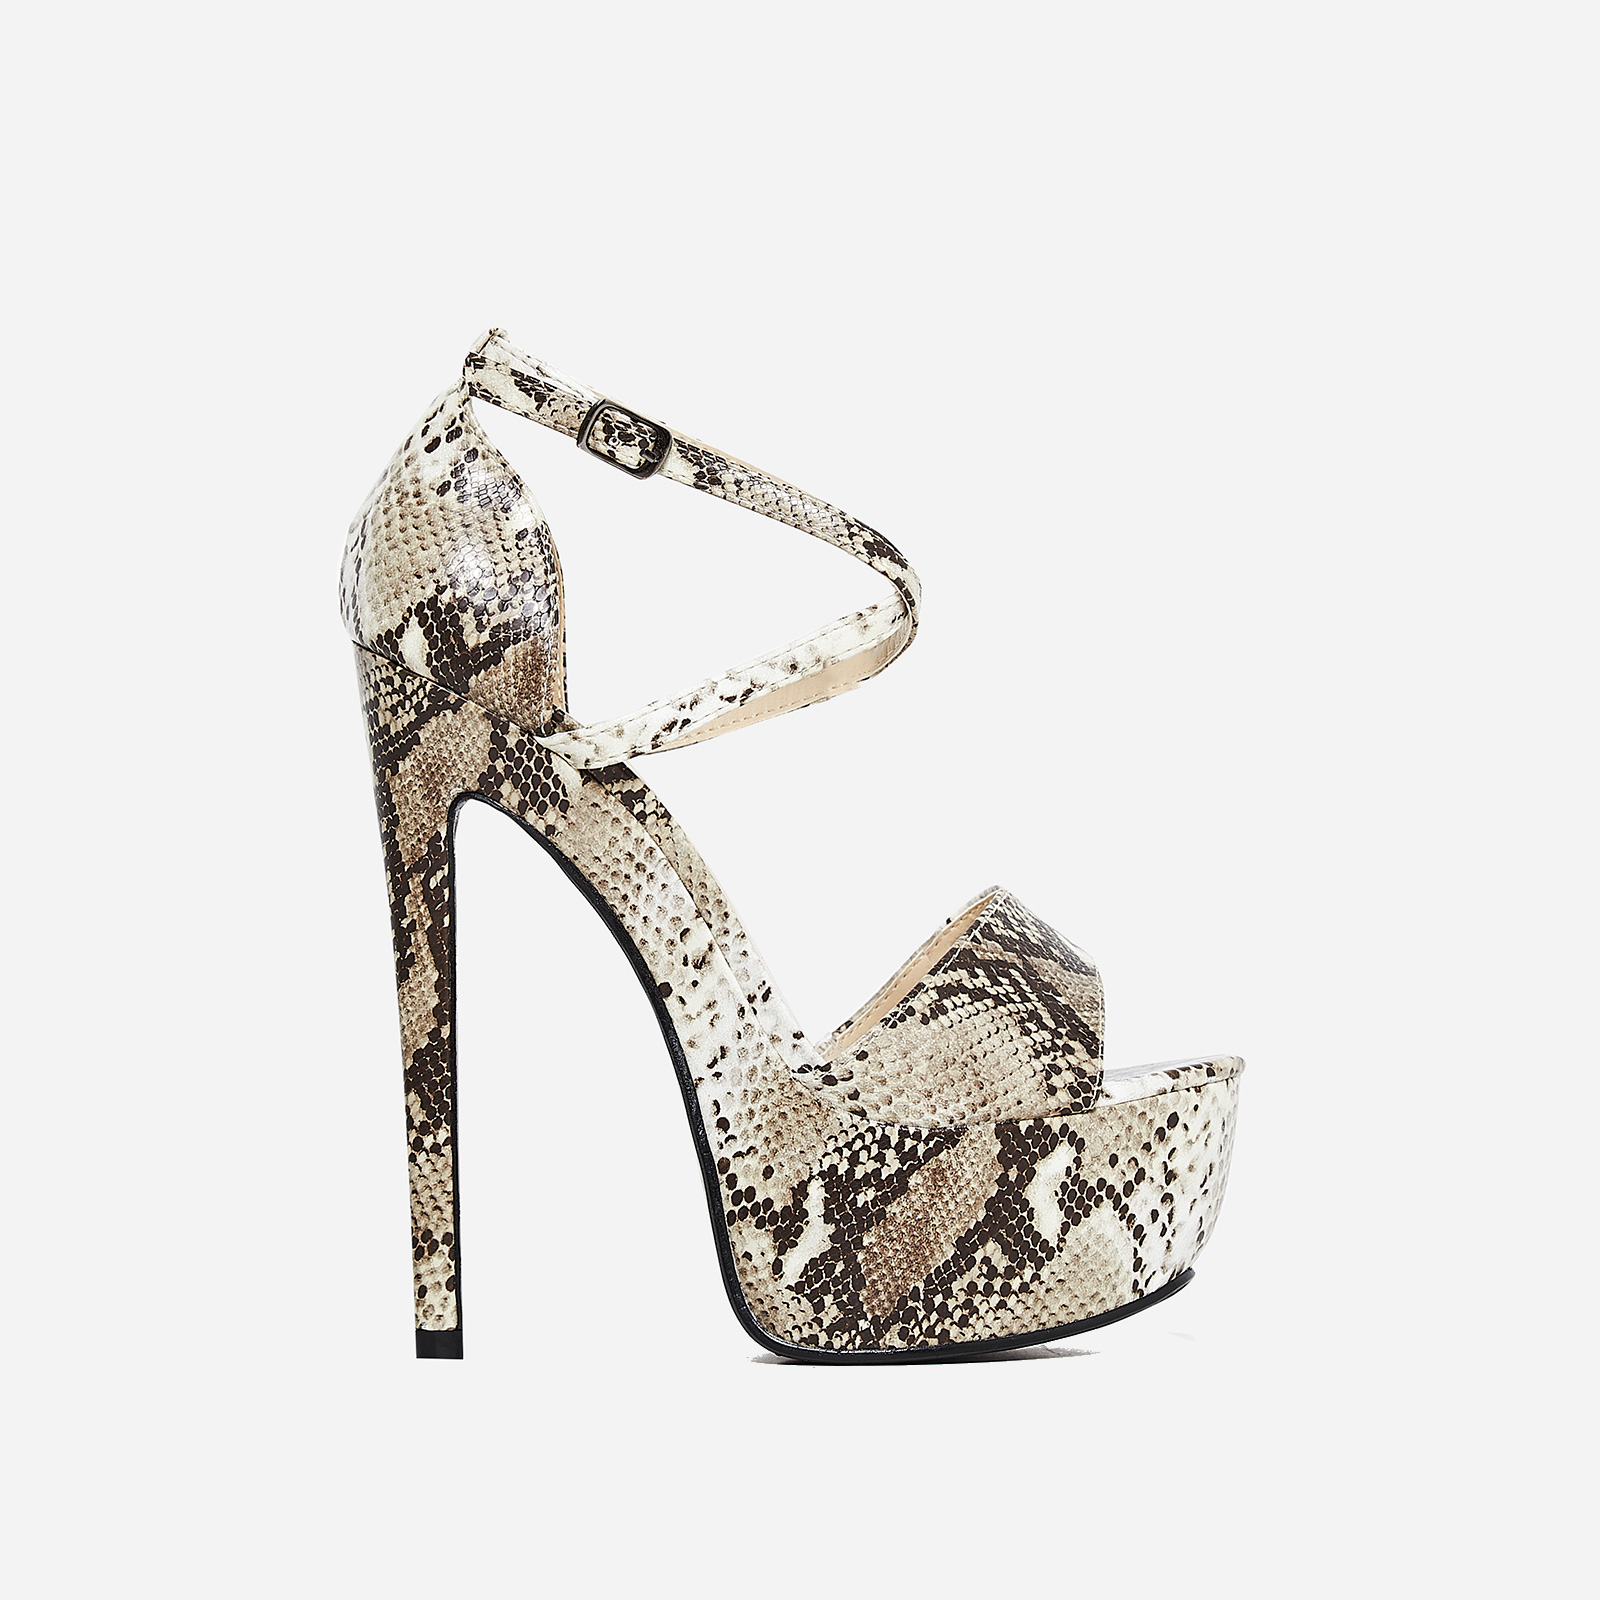 Boa Platform Heel In Nude Snake Print Faux Leather